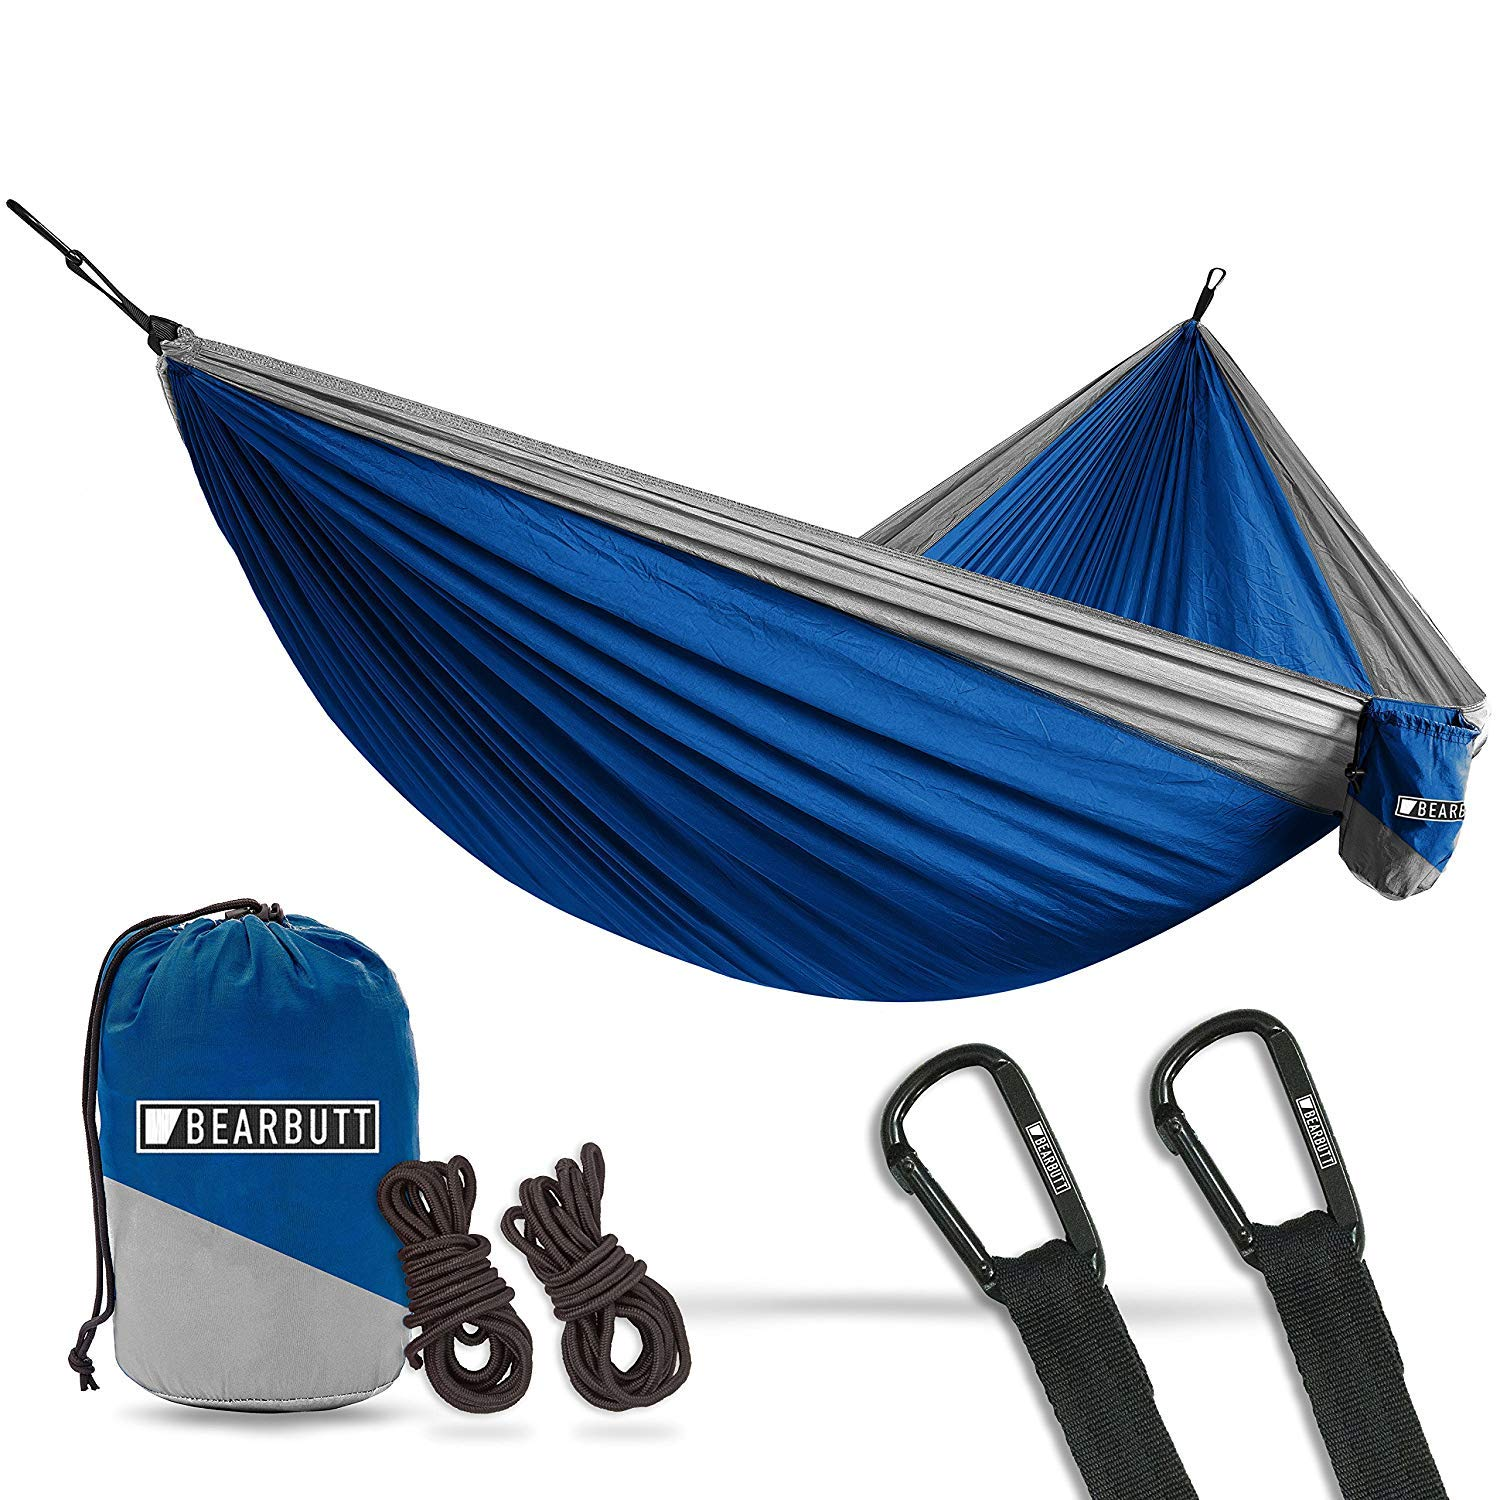 2 Person Double Camping Parachute